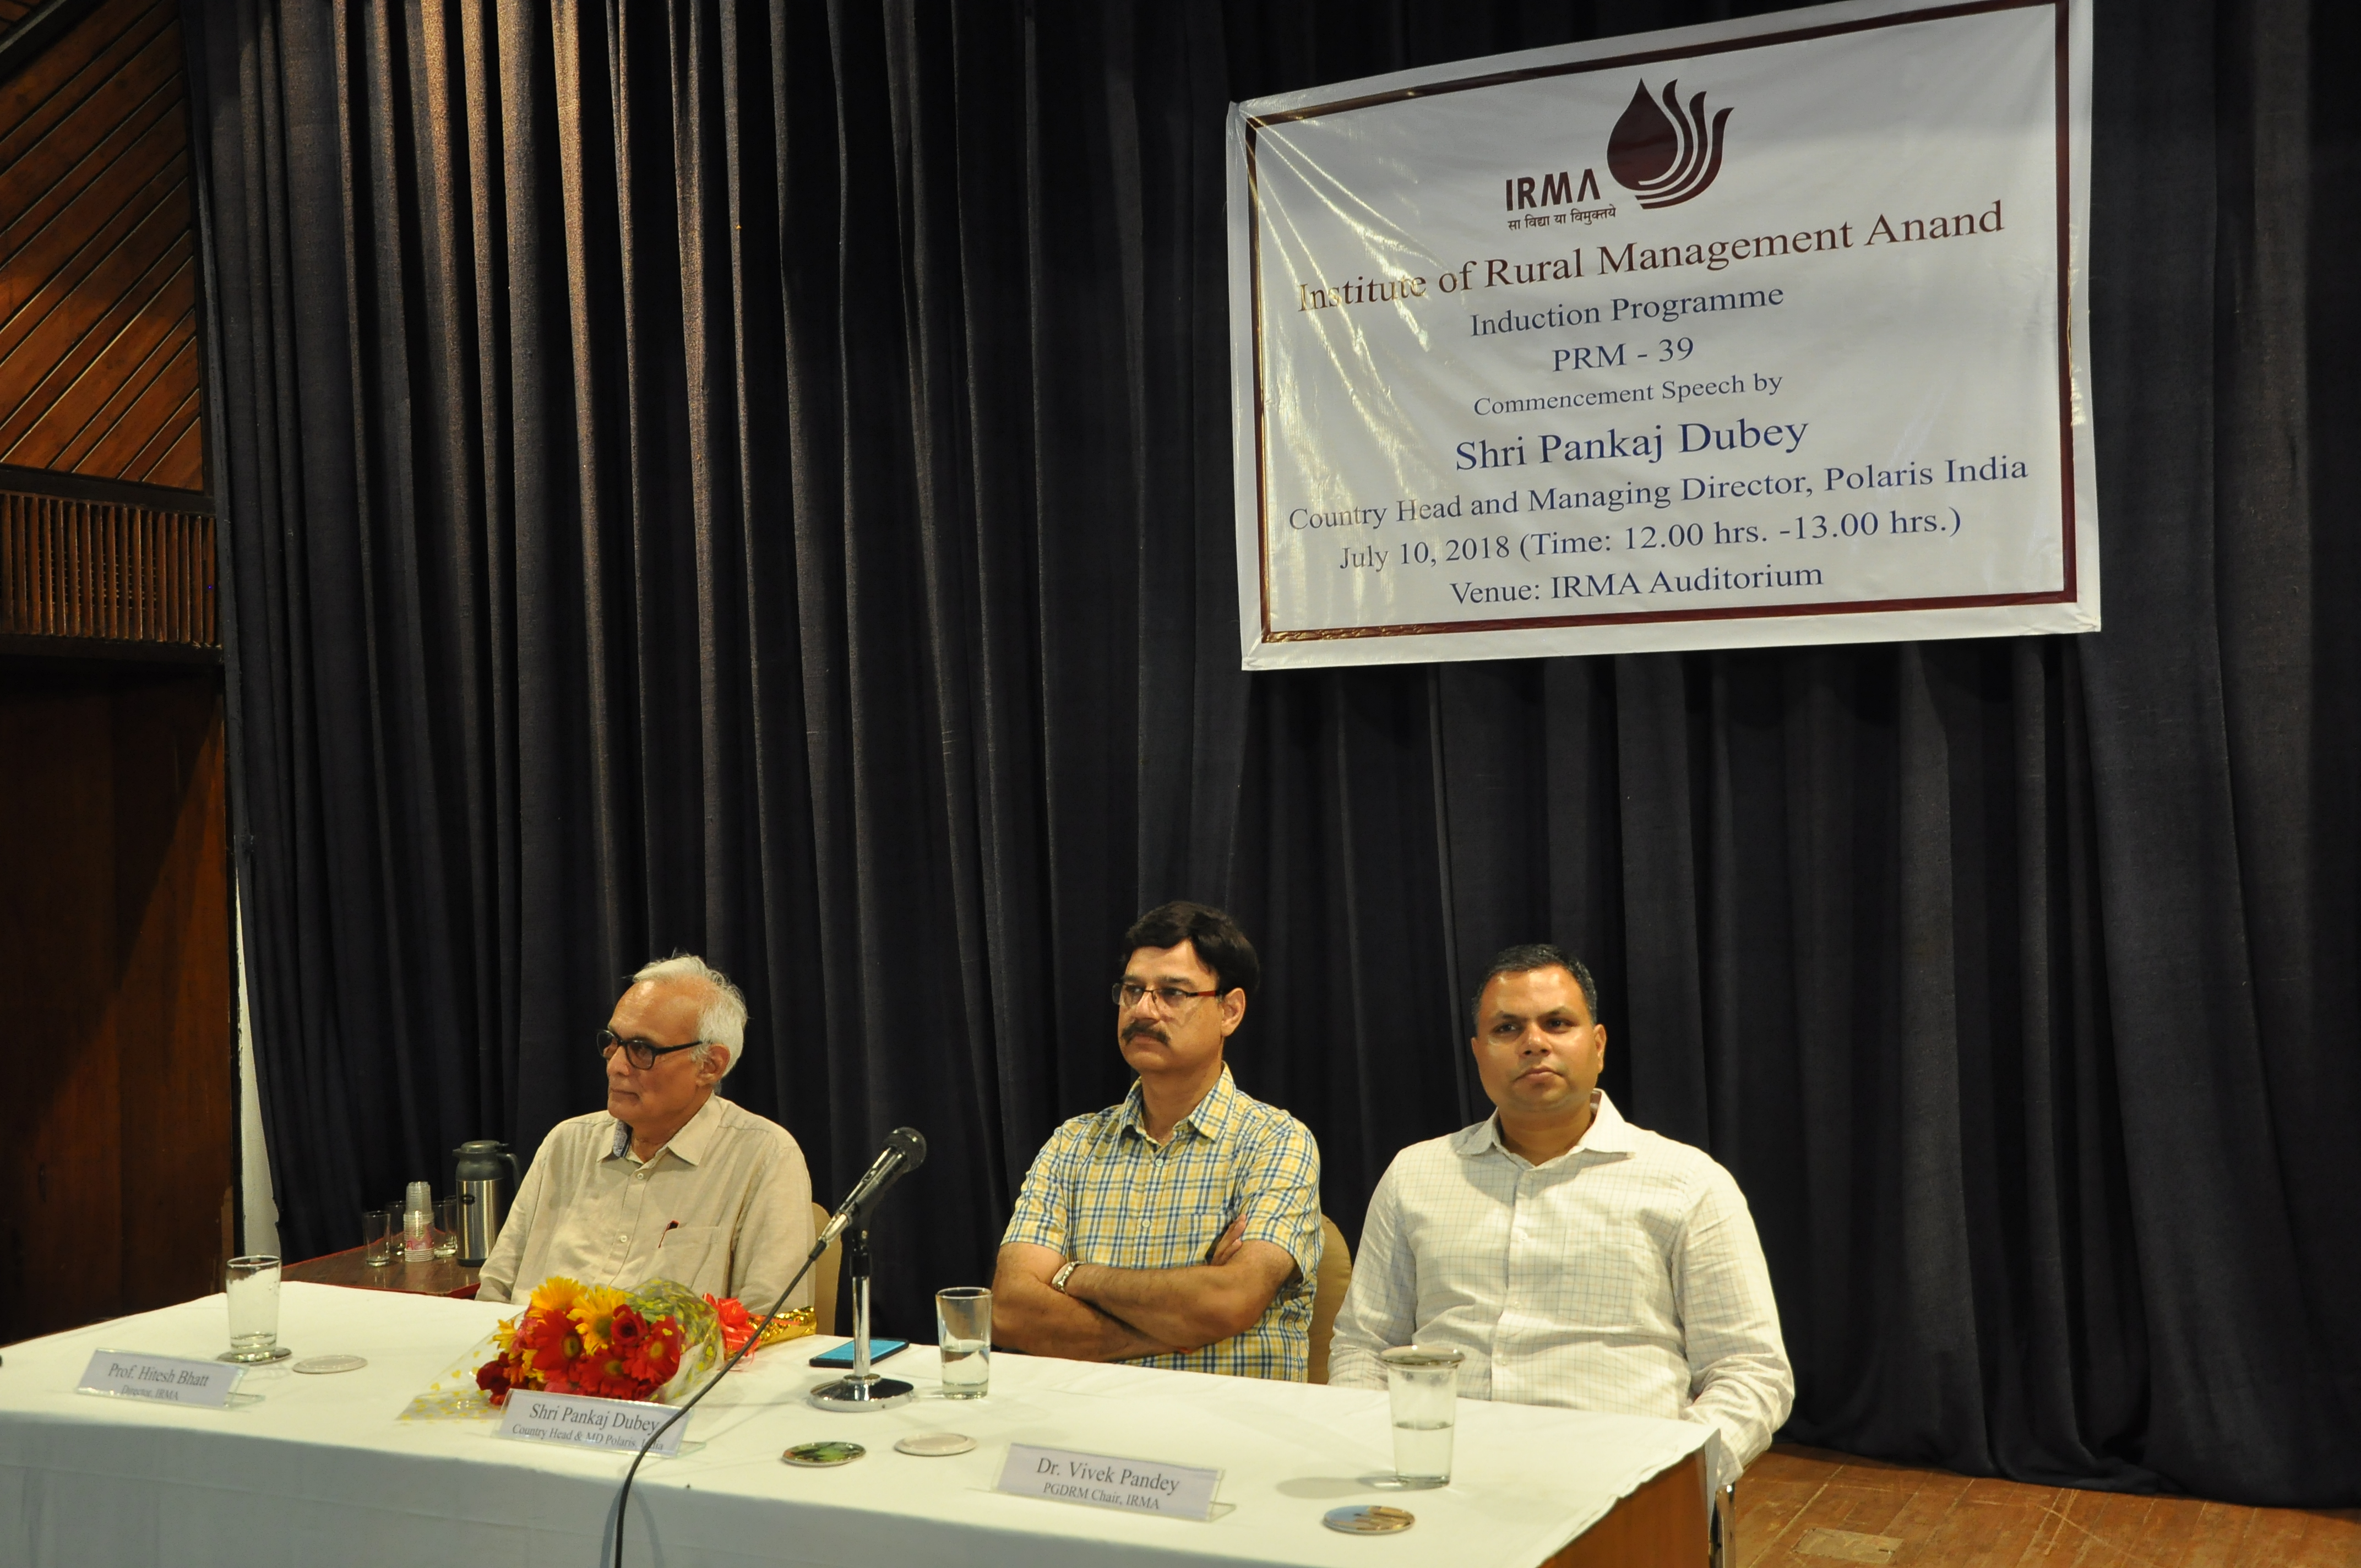 Induction Programme at IRMA